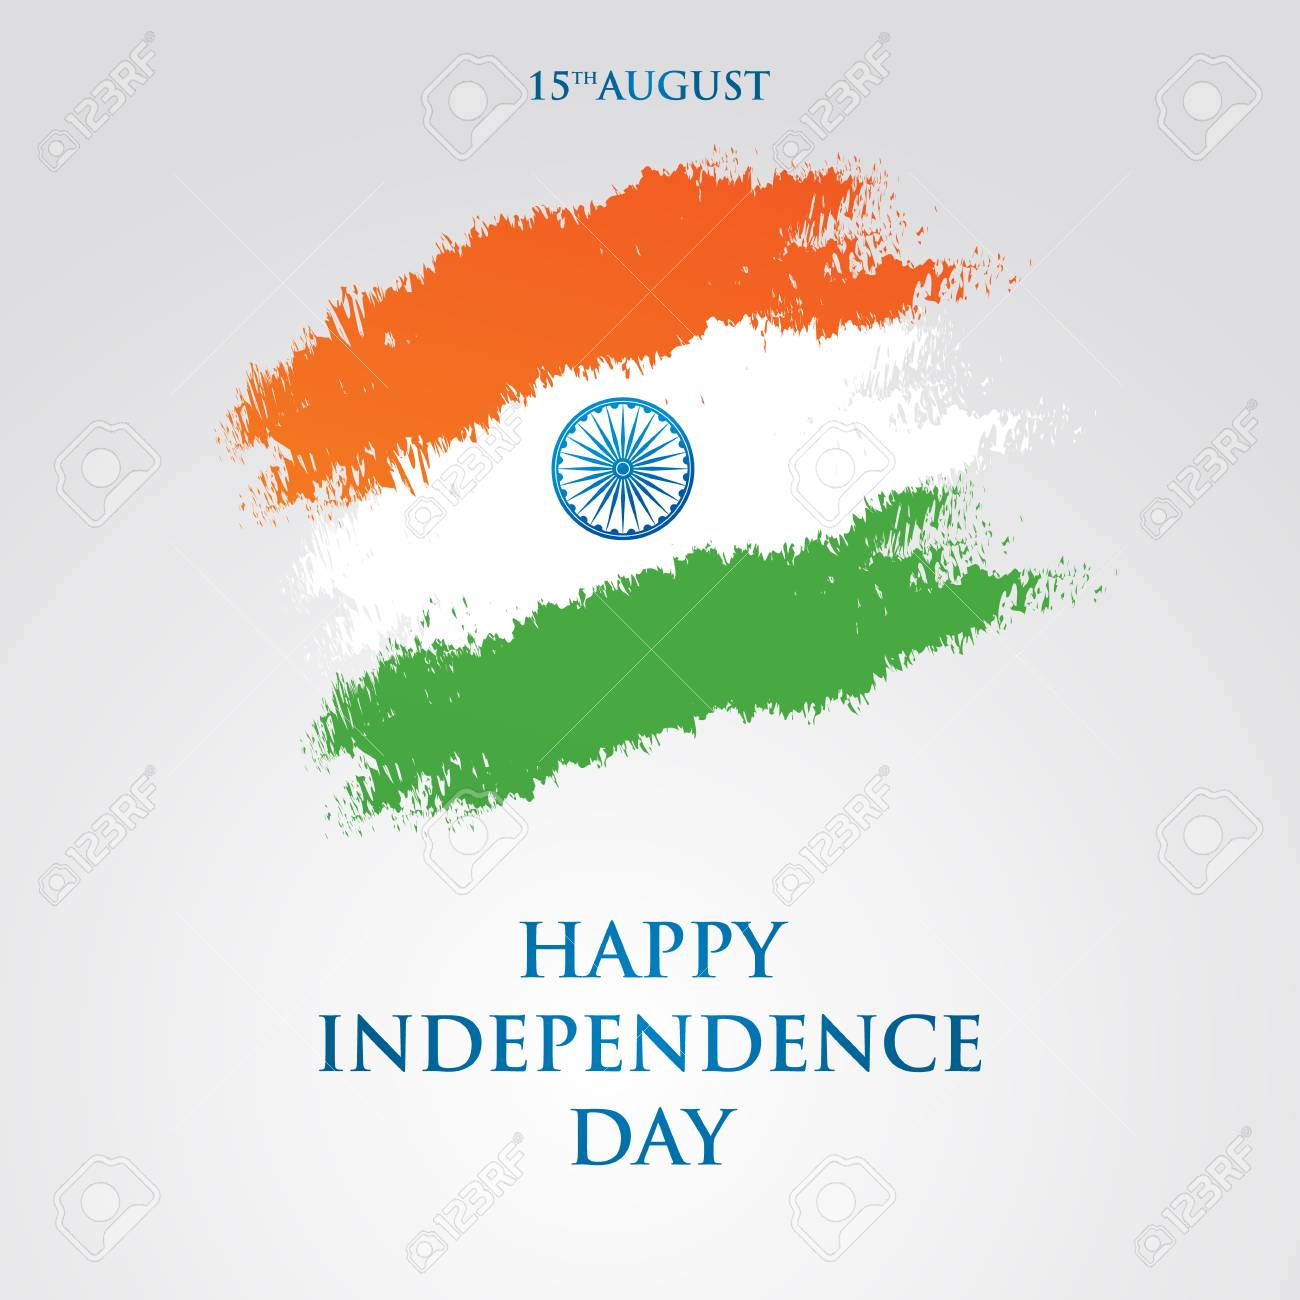 India independence day greeting card vector illustration 15th india independence day greeting card vector illustration 15th august happy independence day stock vector m4hsunfo